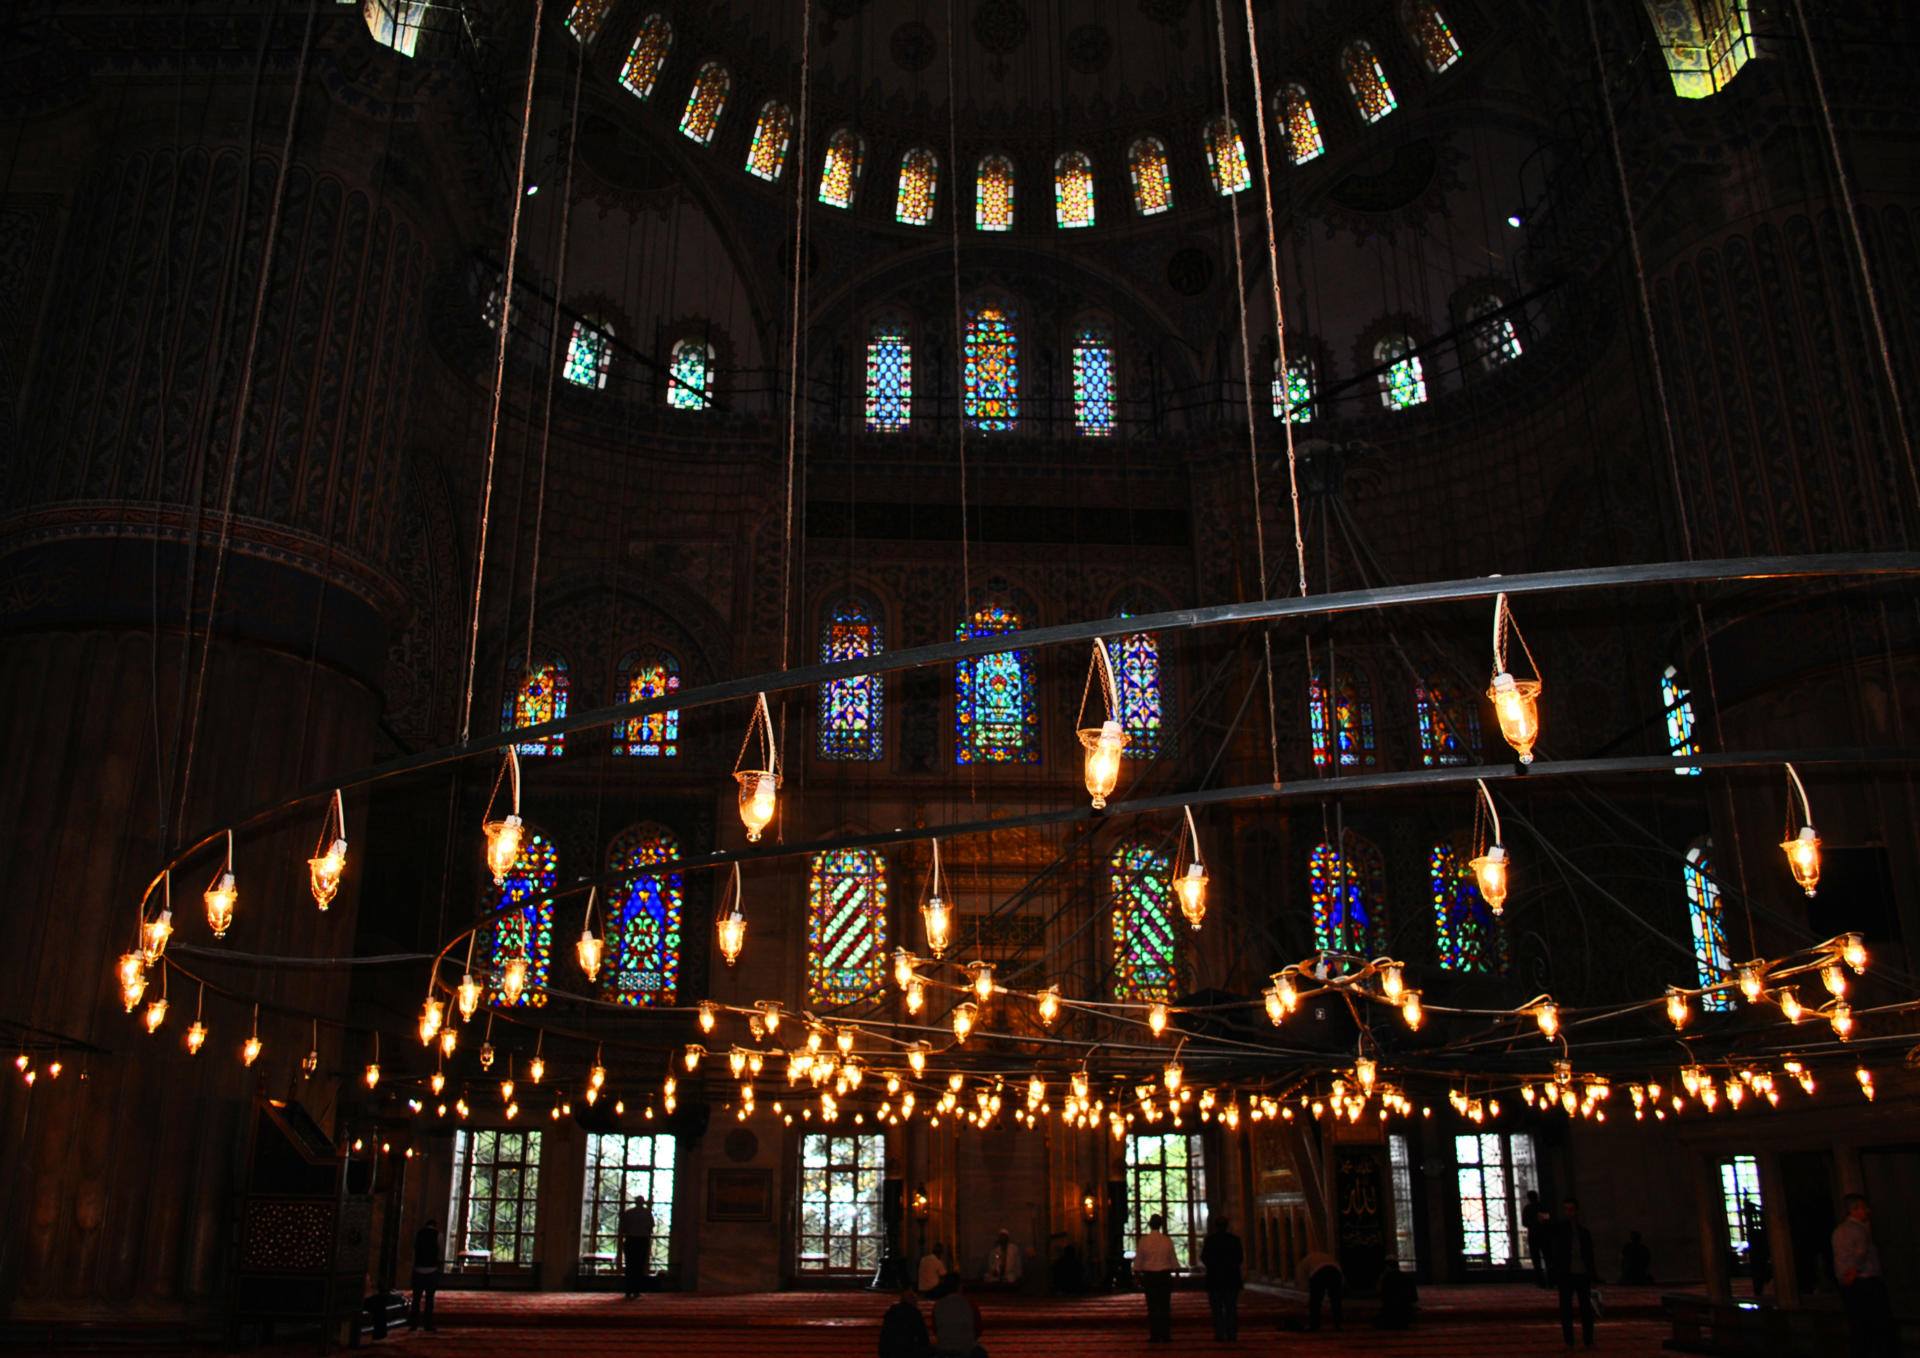 Sultan Ahmed Mosque (The Blue Mosque)